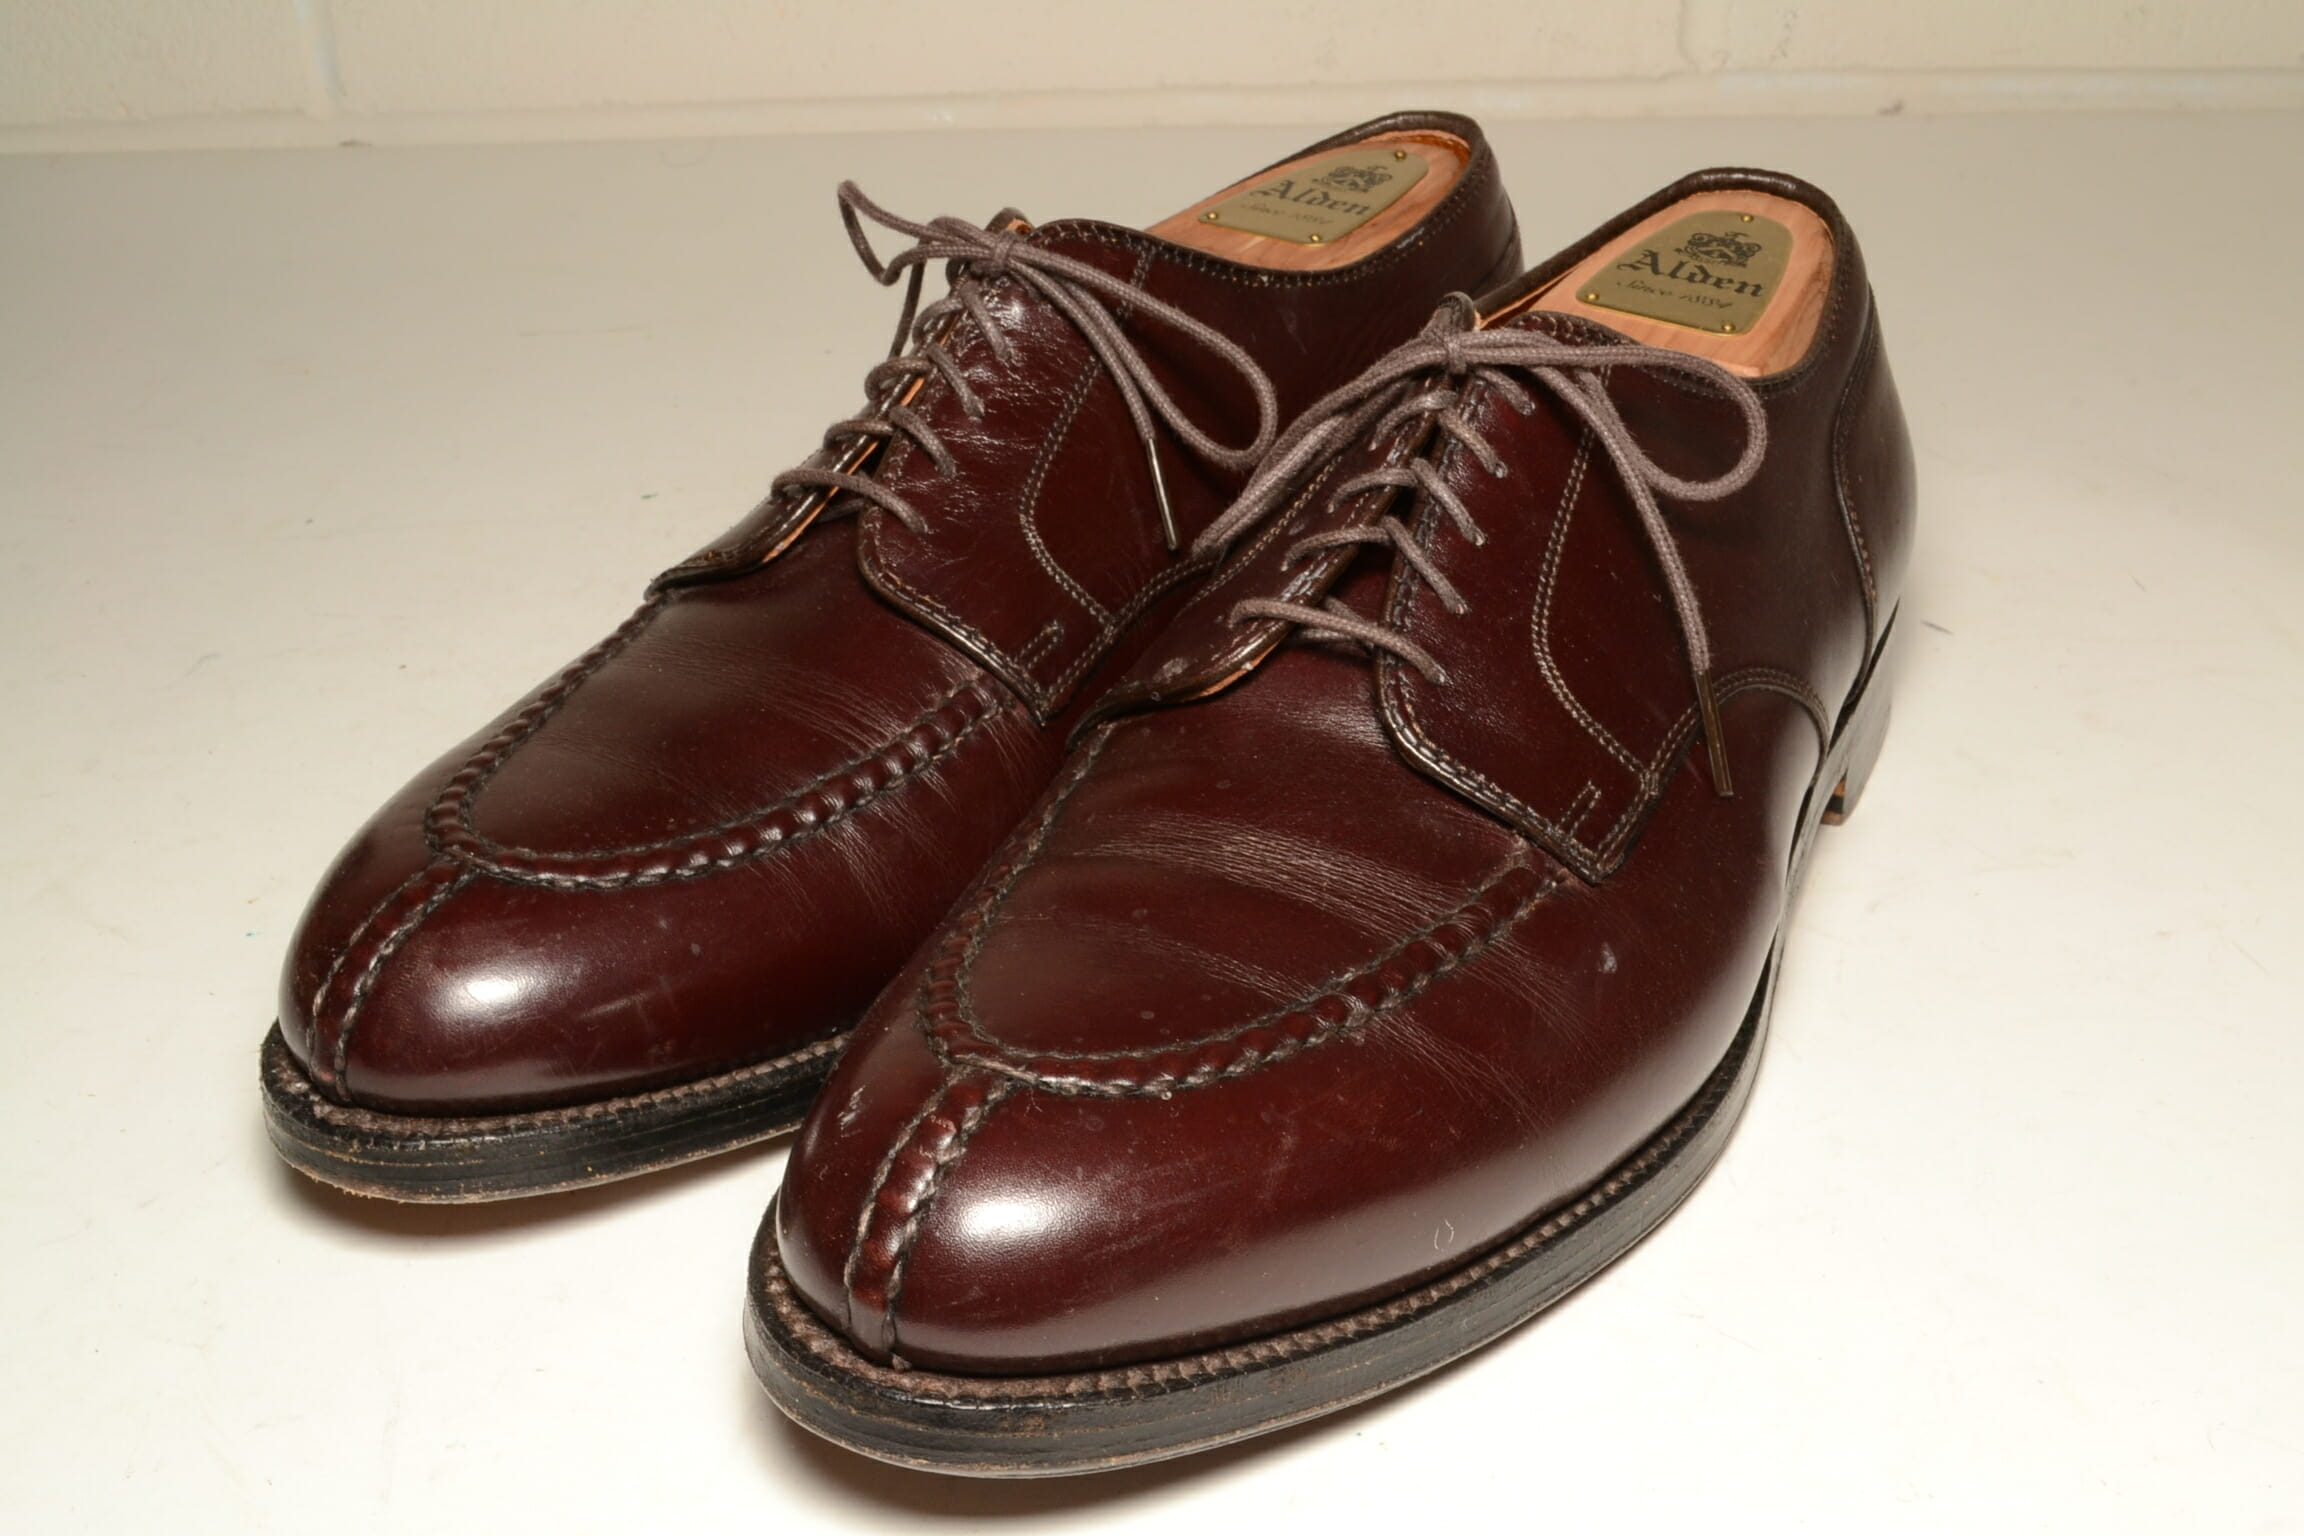 Vintage alden shoes metropolis vintage n y c for The alden